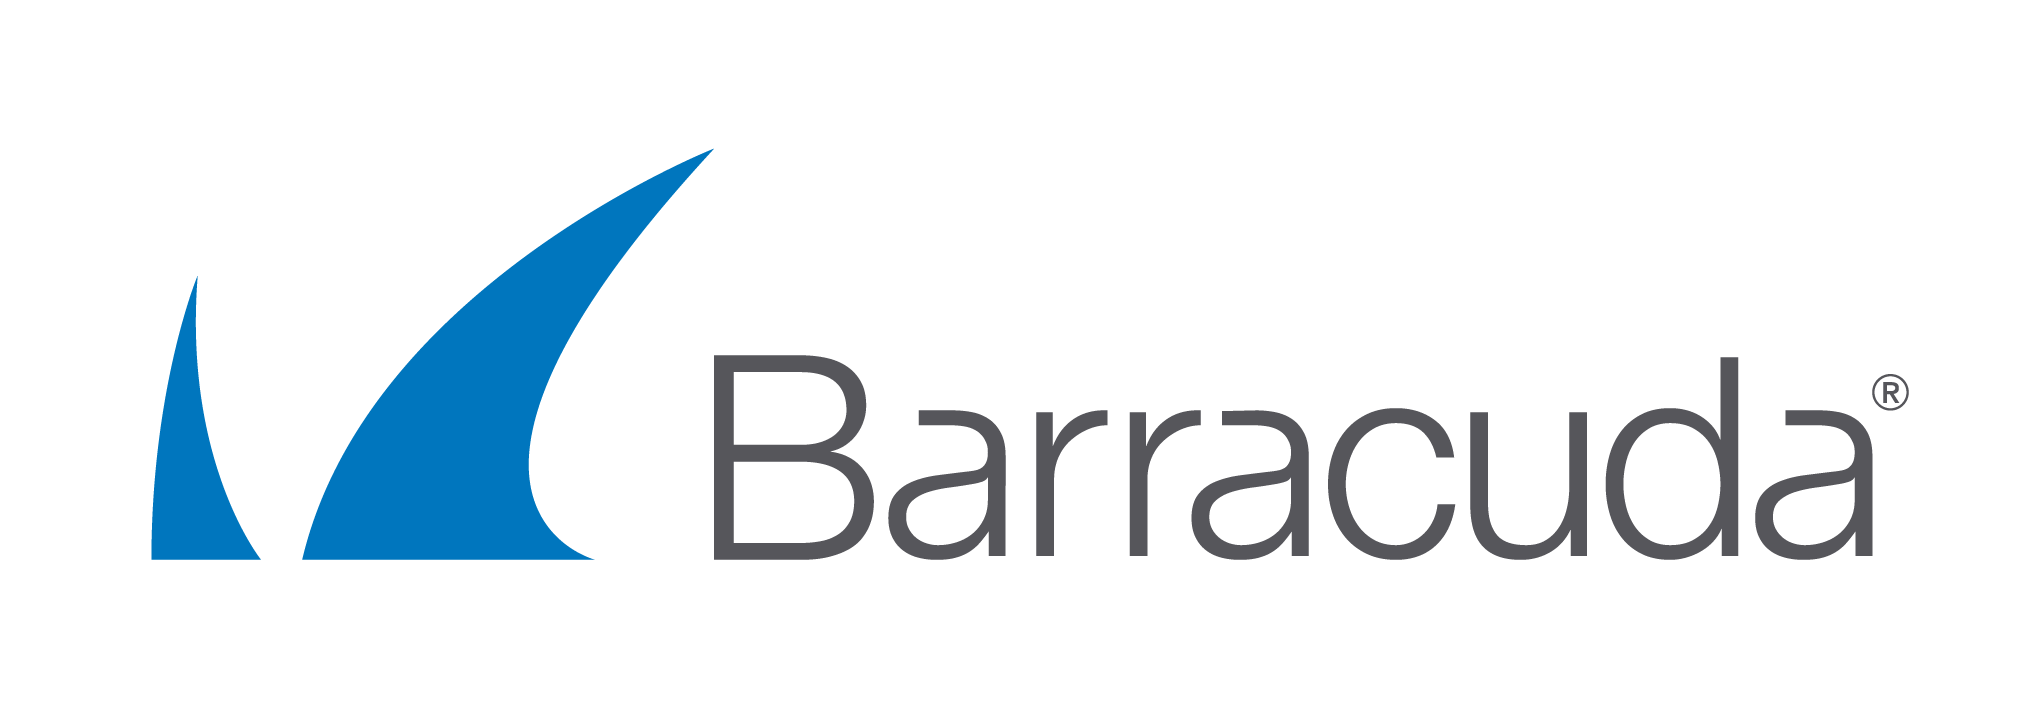 logo_barracuda_main_for-light-backgrounds